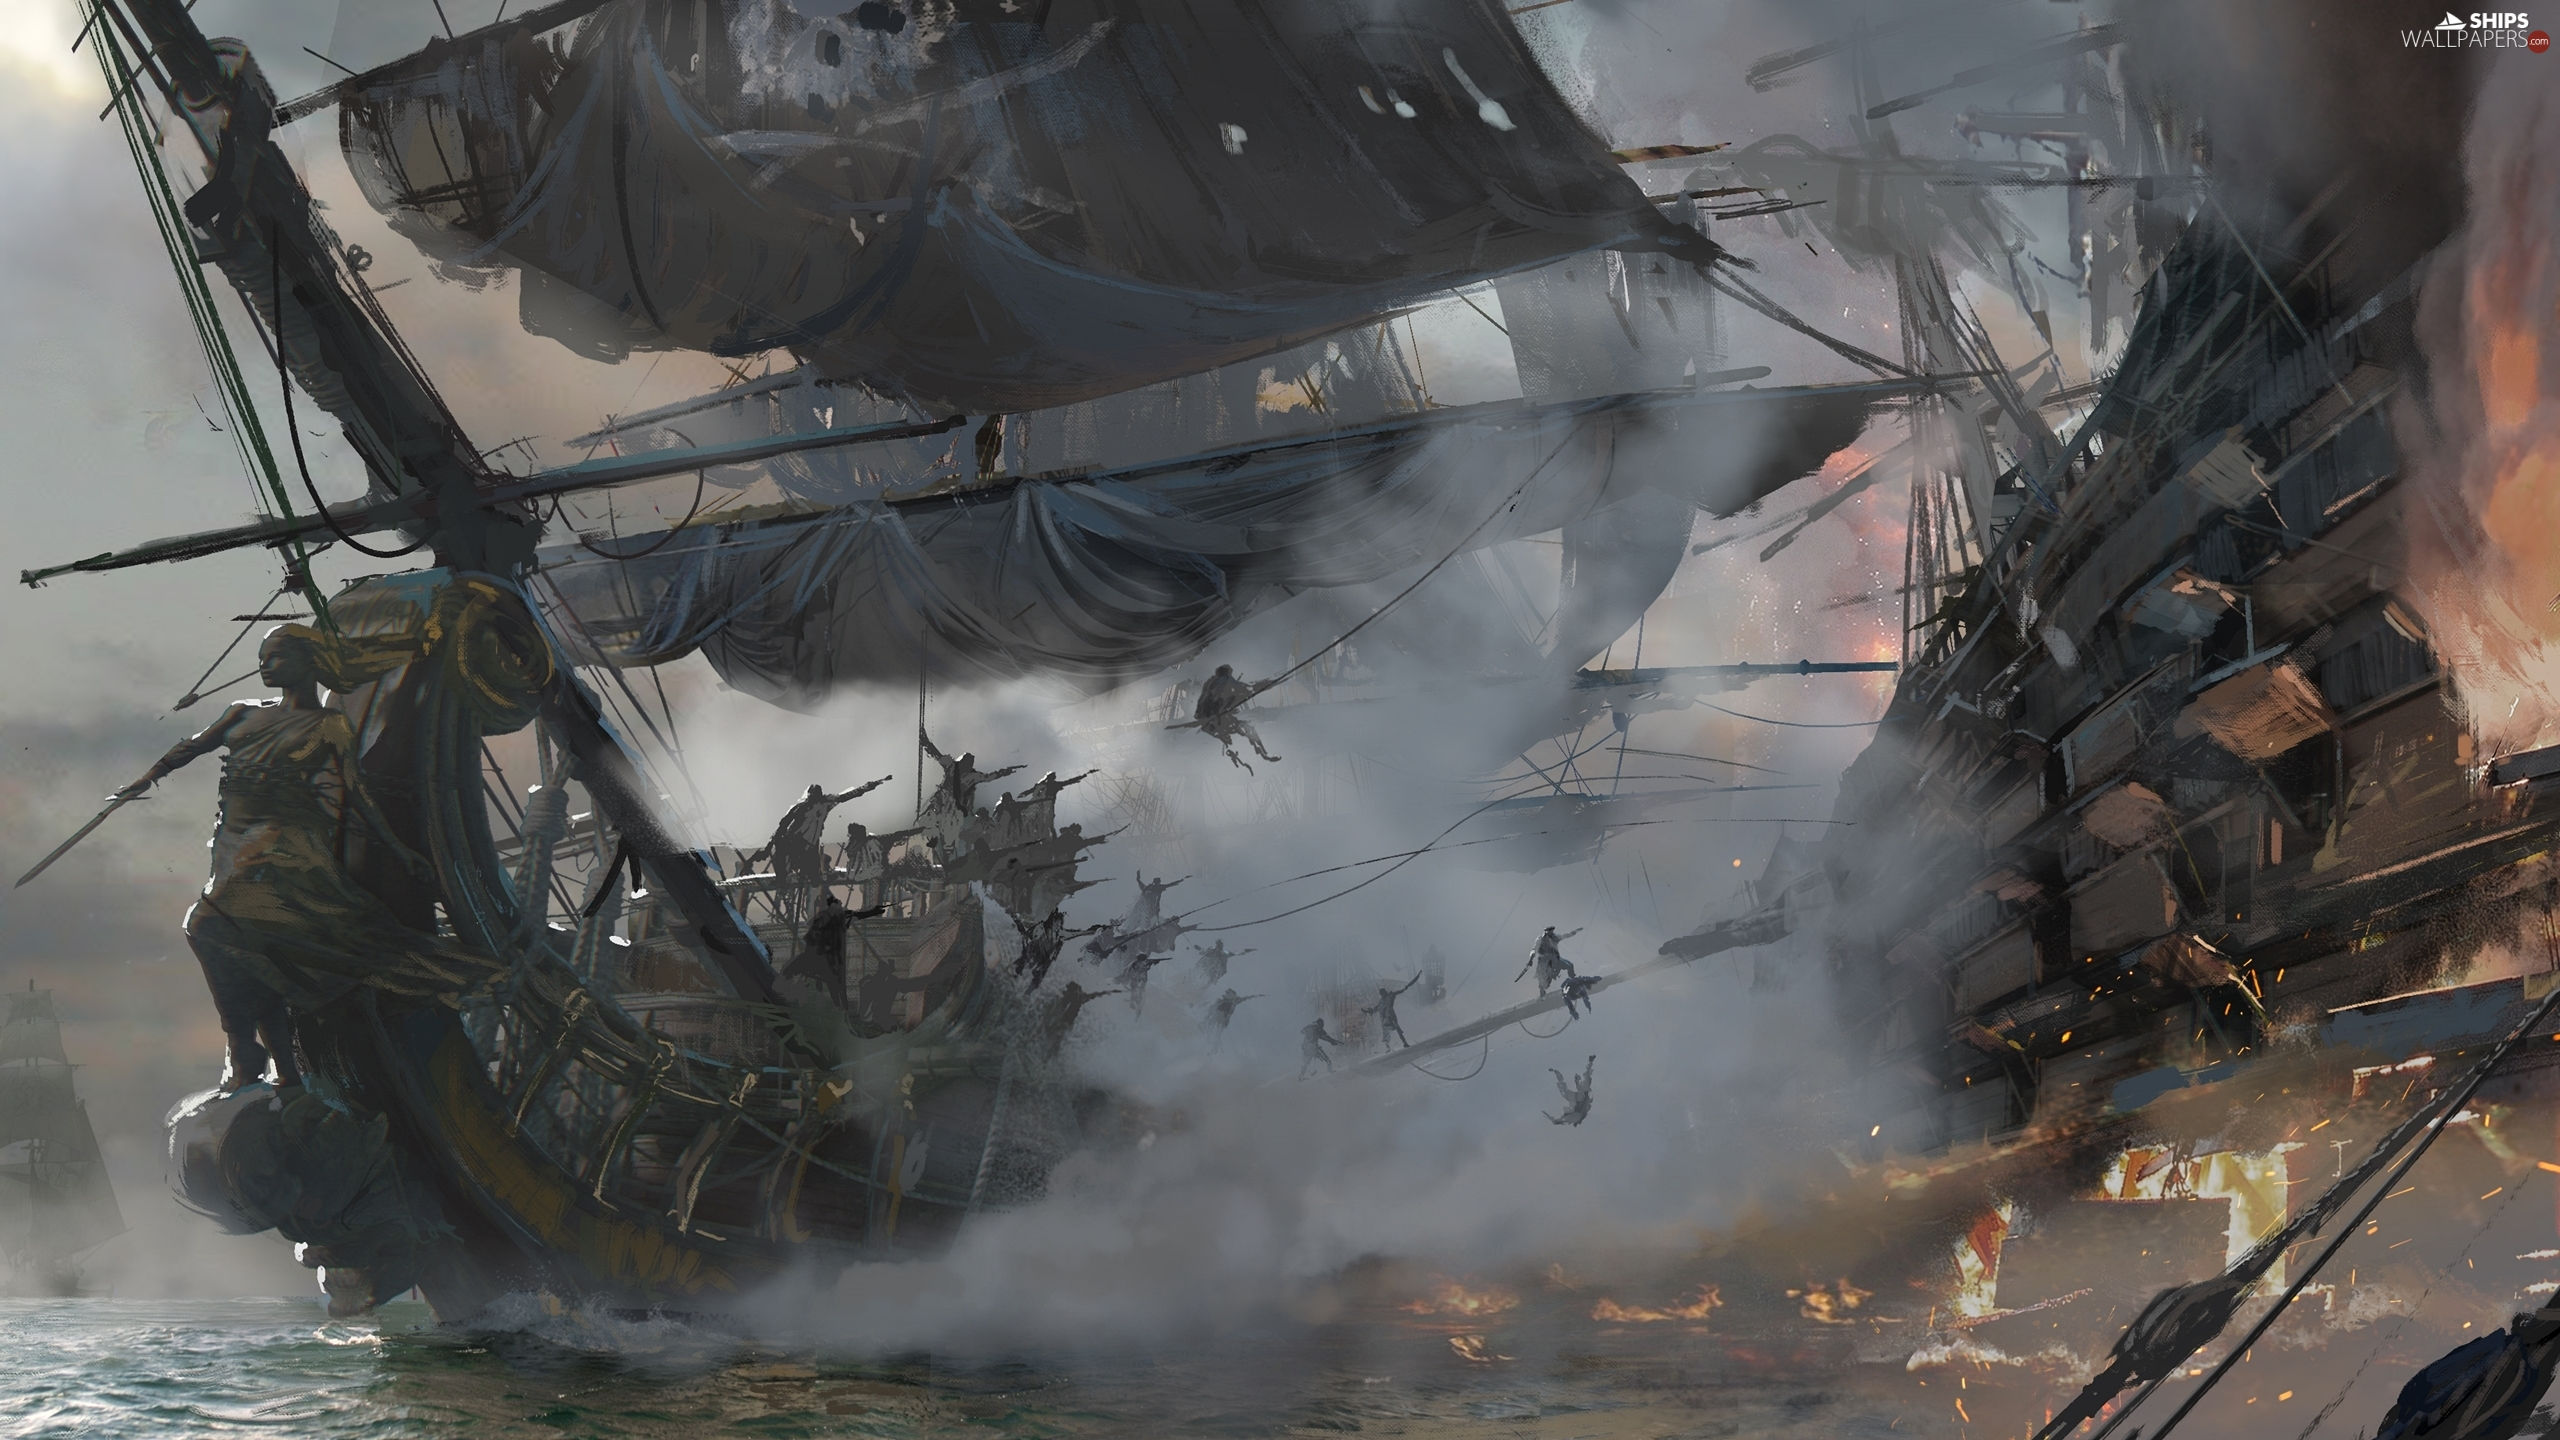 Fight, sailboats, Ship, piratical, Skull and Bones